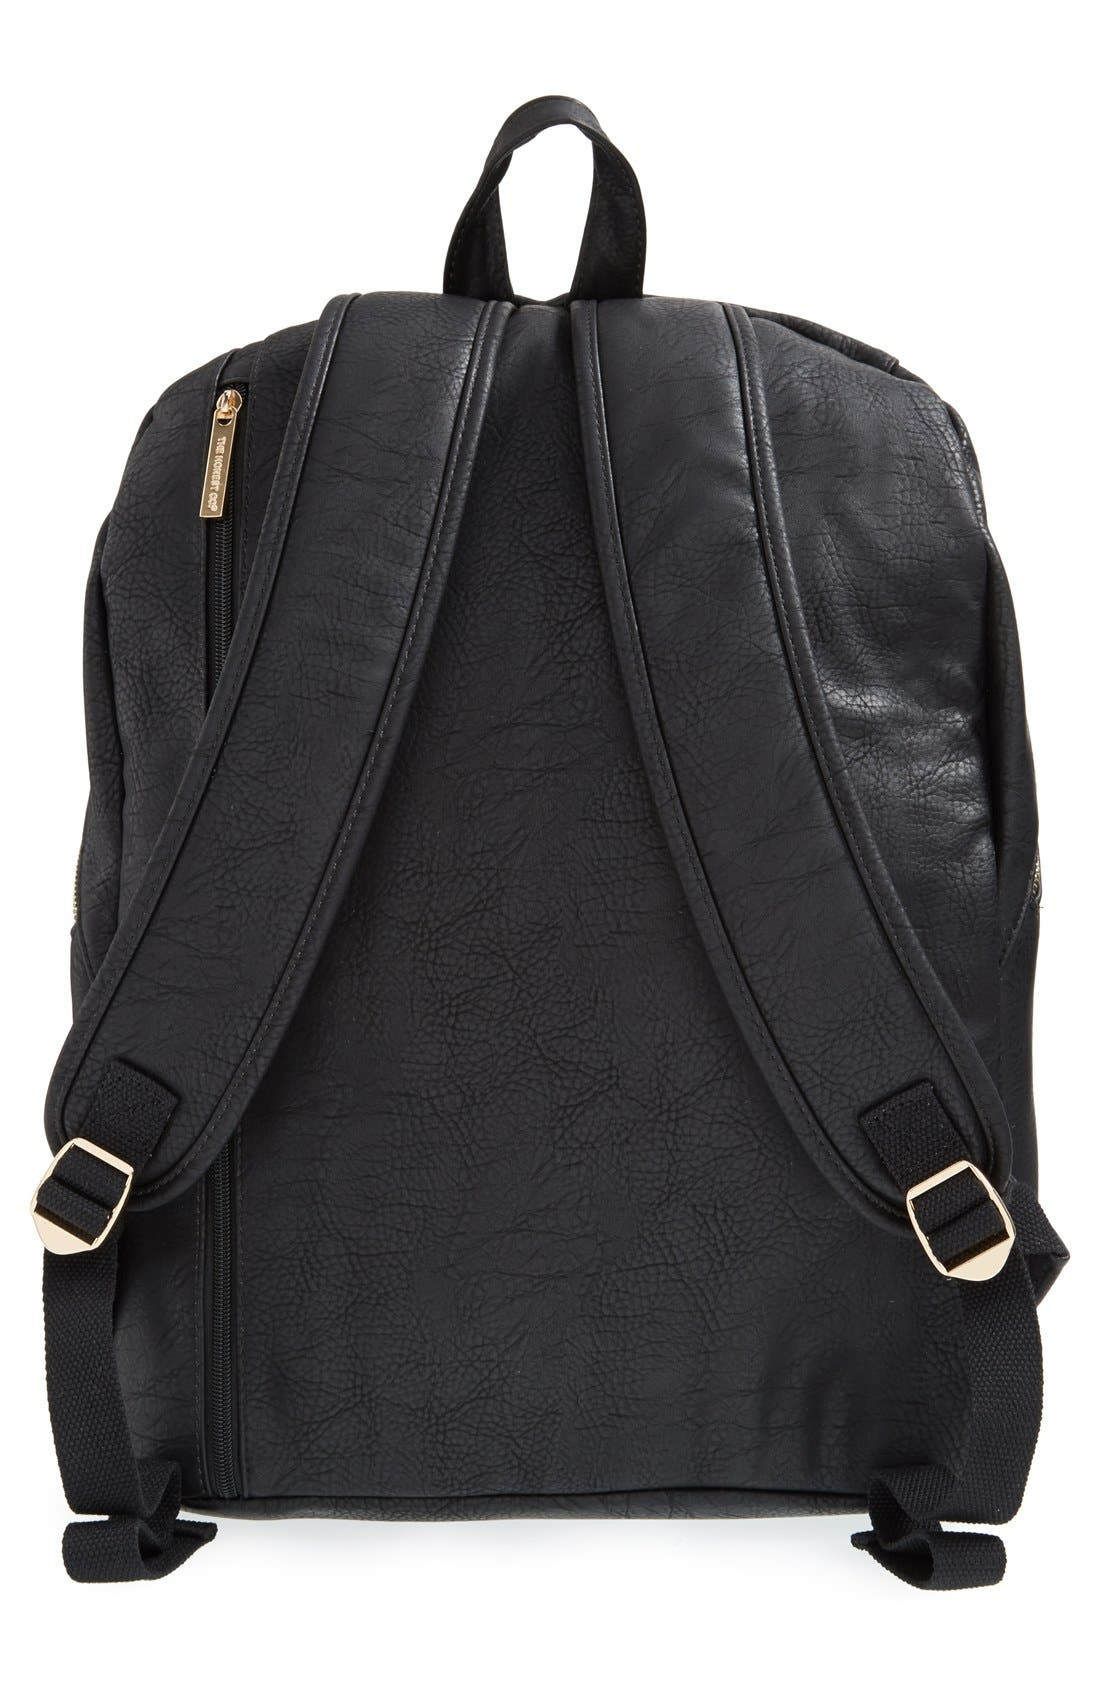 'City' Faux Leather Diaper Backpack,                             Alternate thumbnail 2, color,                             BLACK